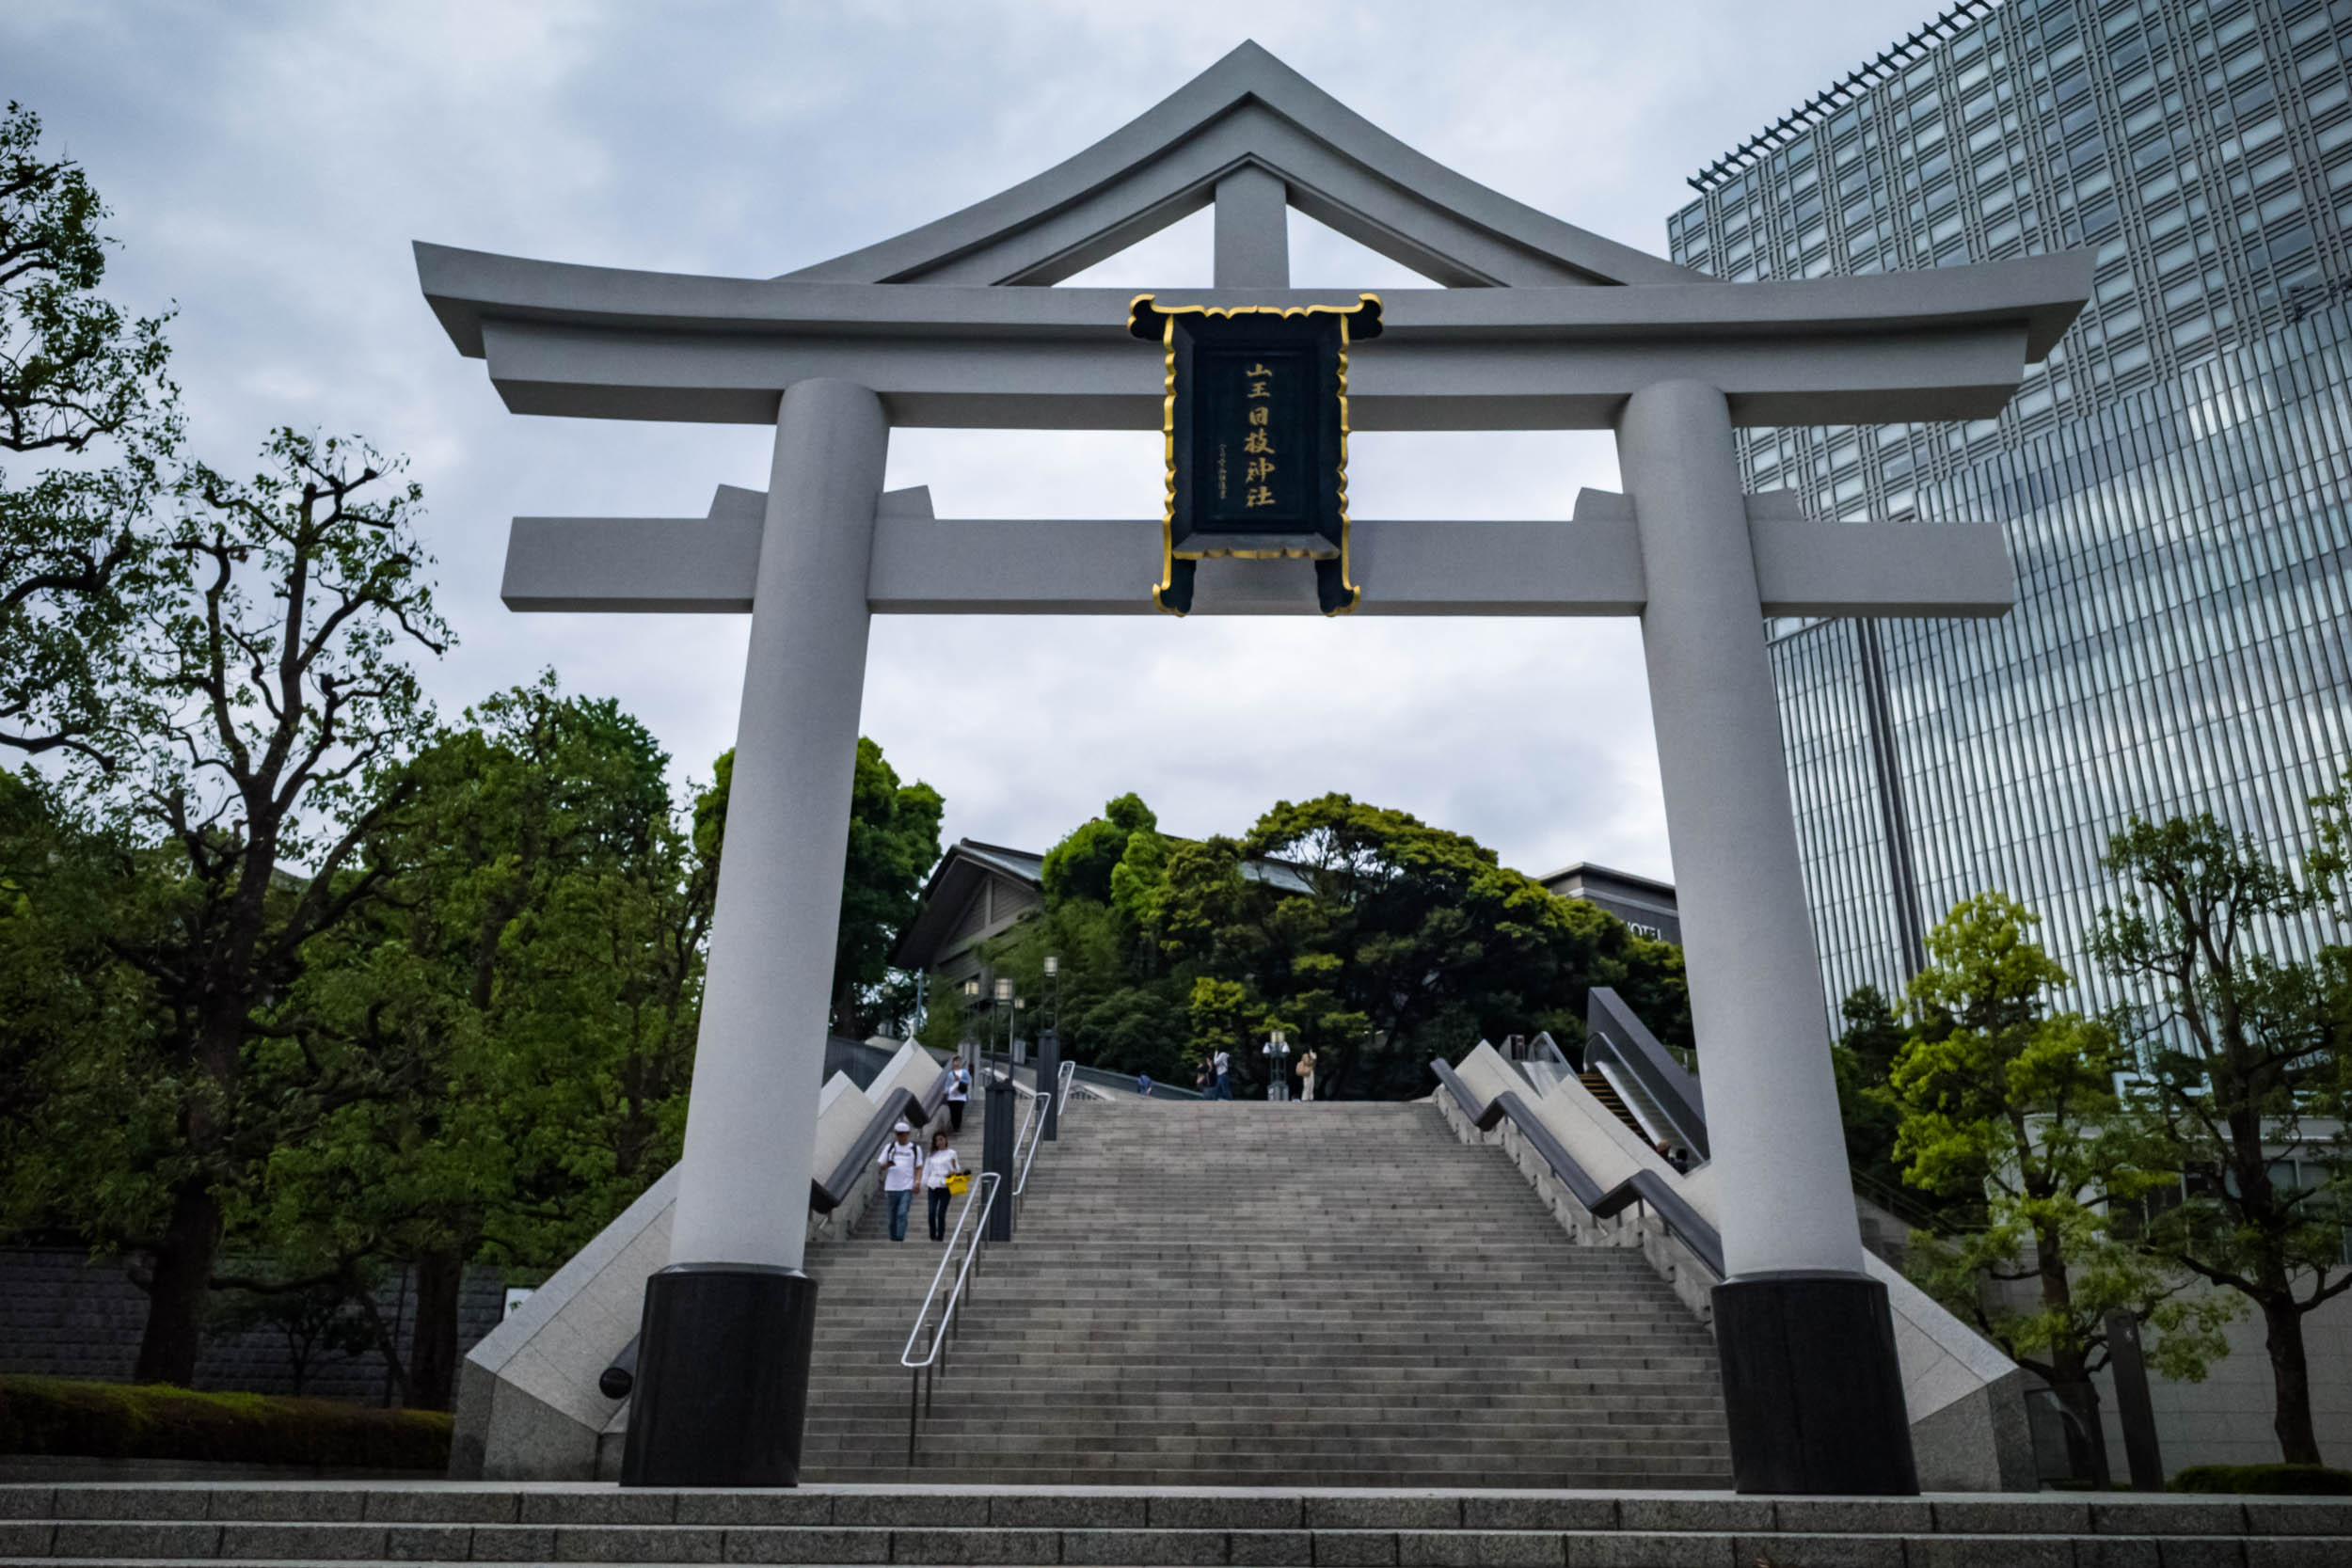 The torii at the main entrance with the escalator on the right